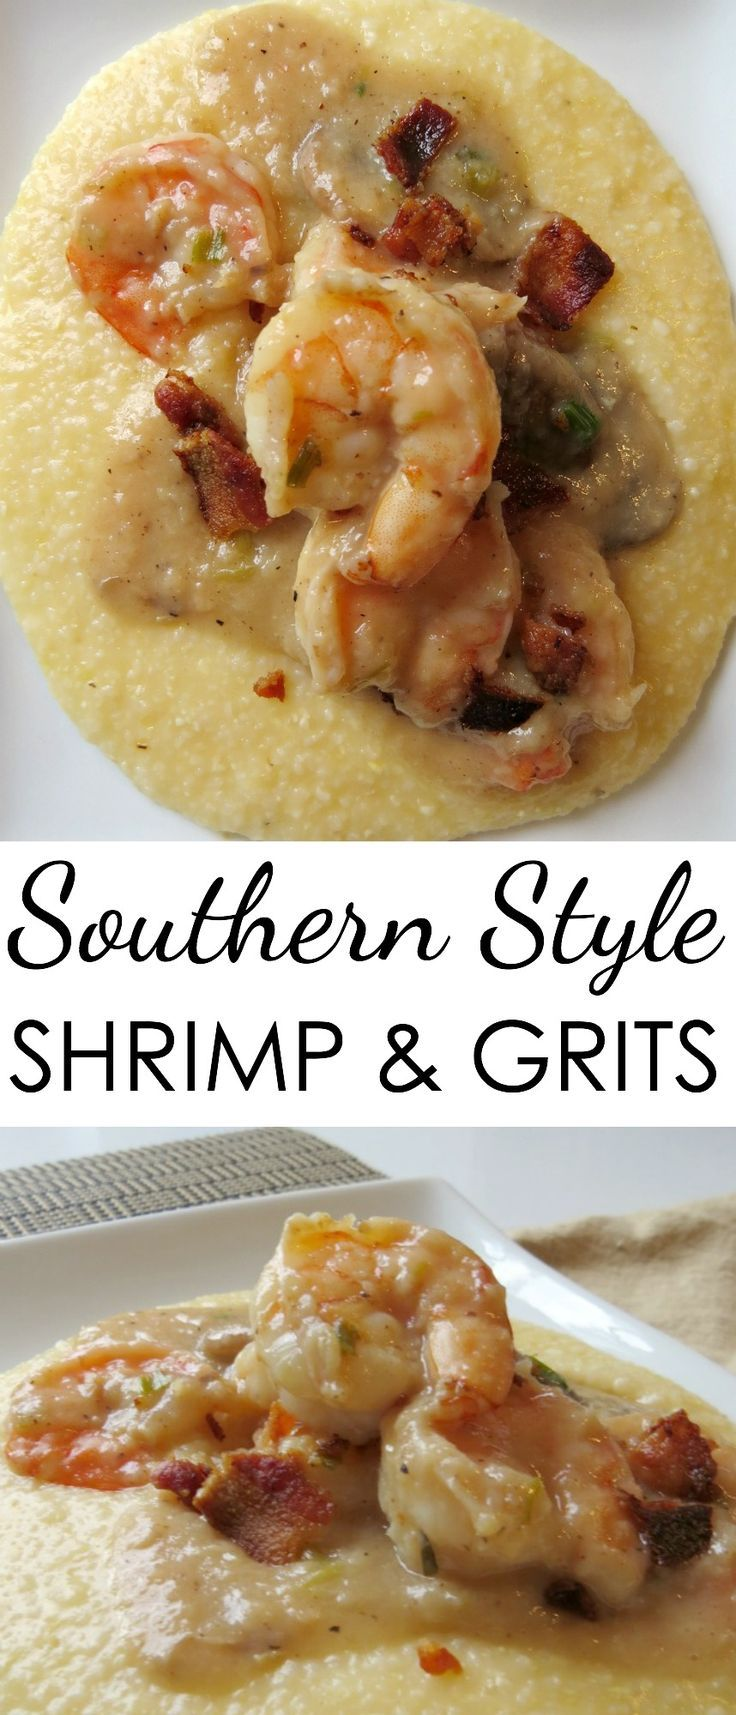 Here's an easy southern style shrimp and grits recipe that's hearty and…